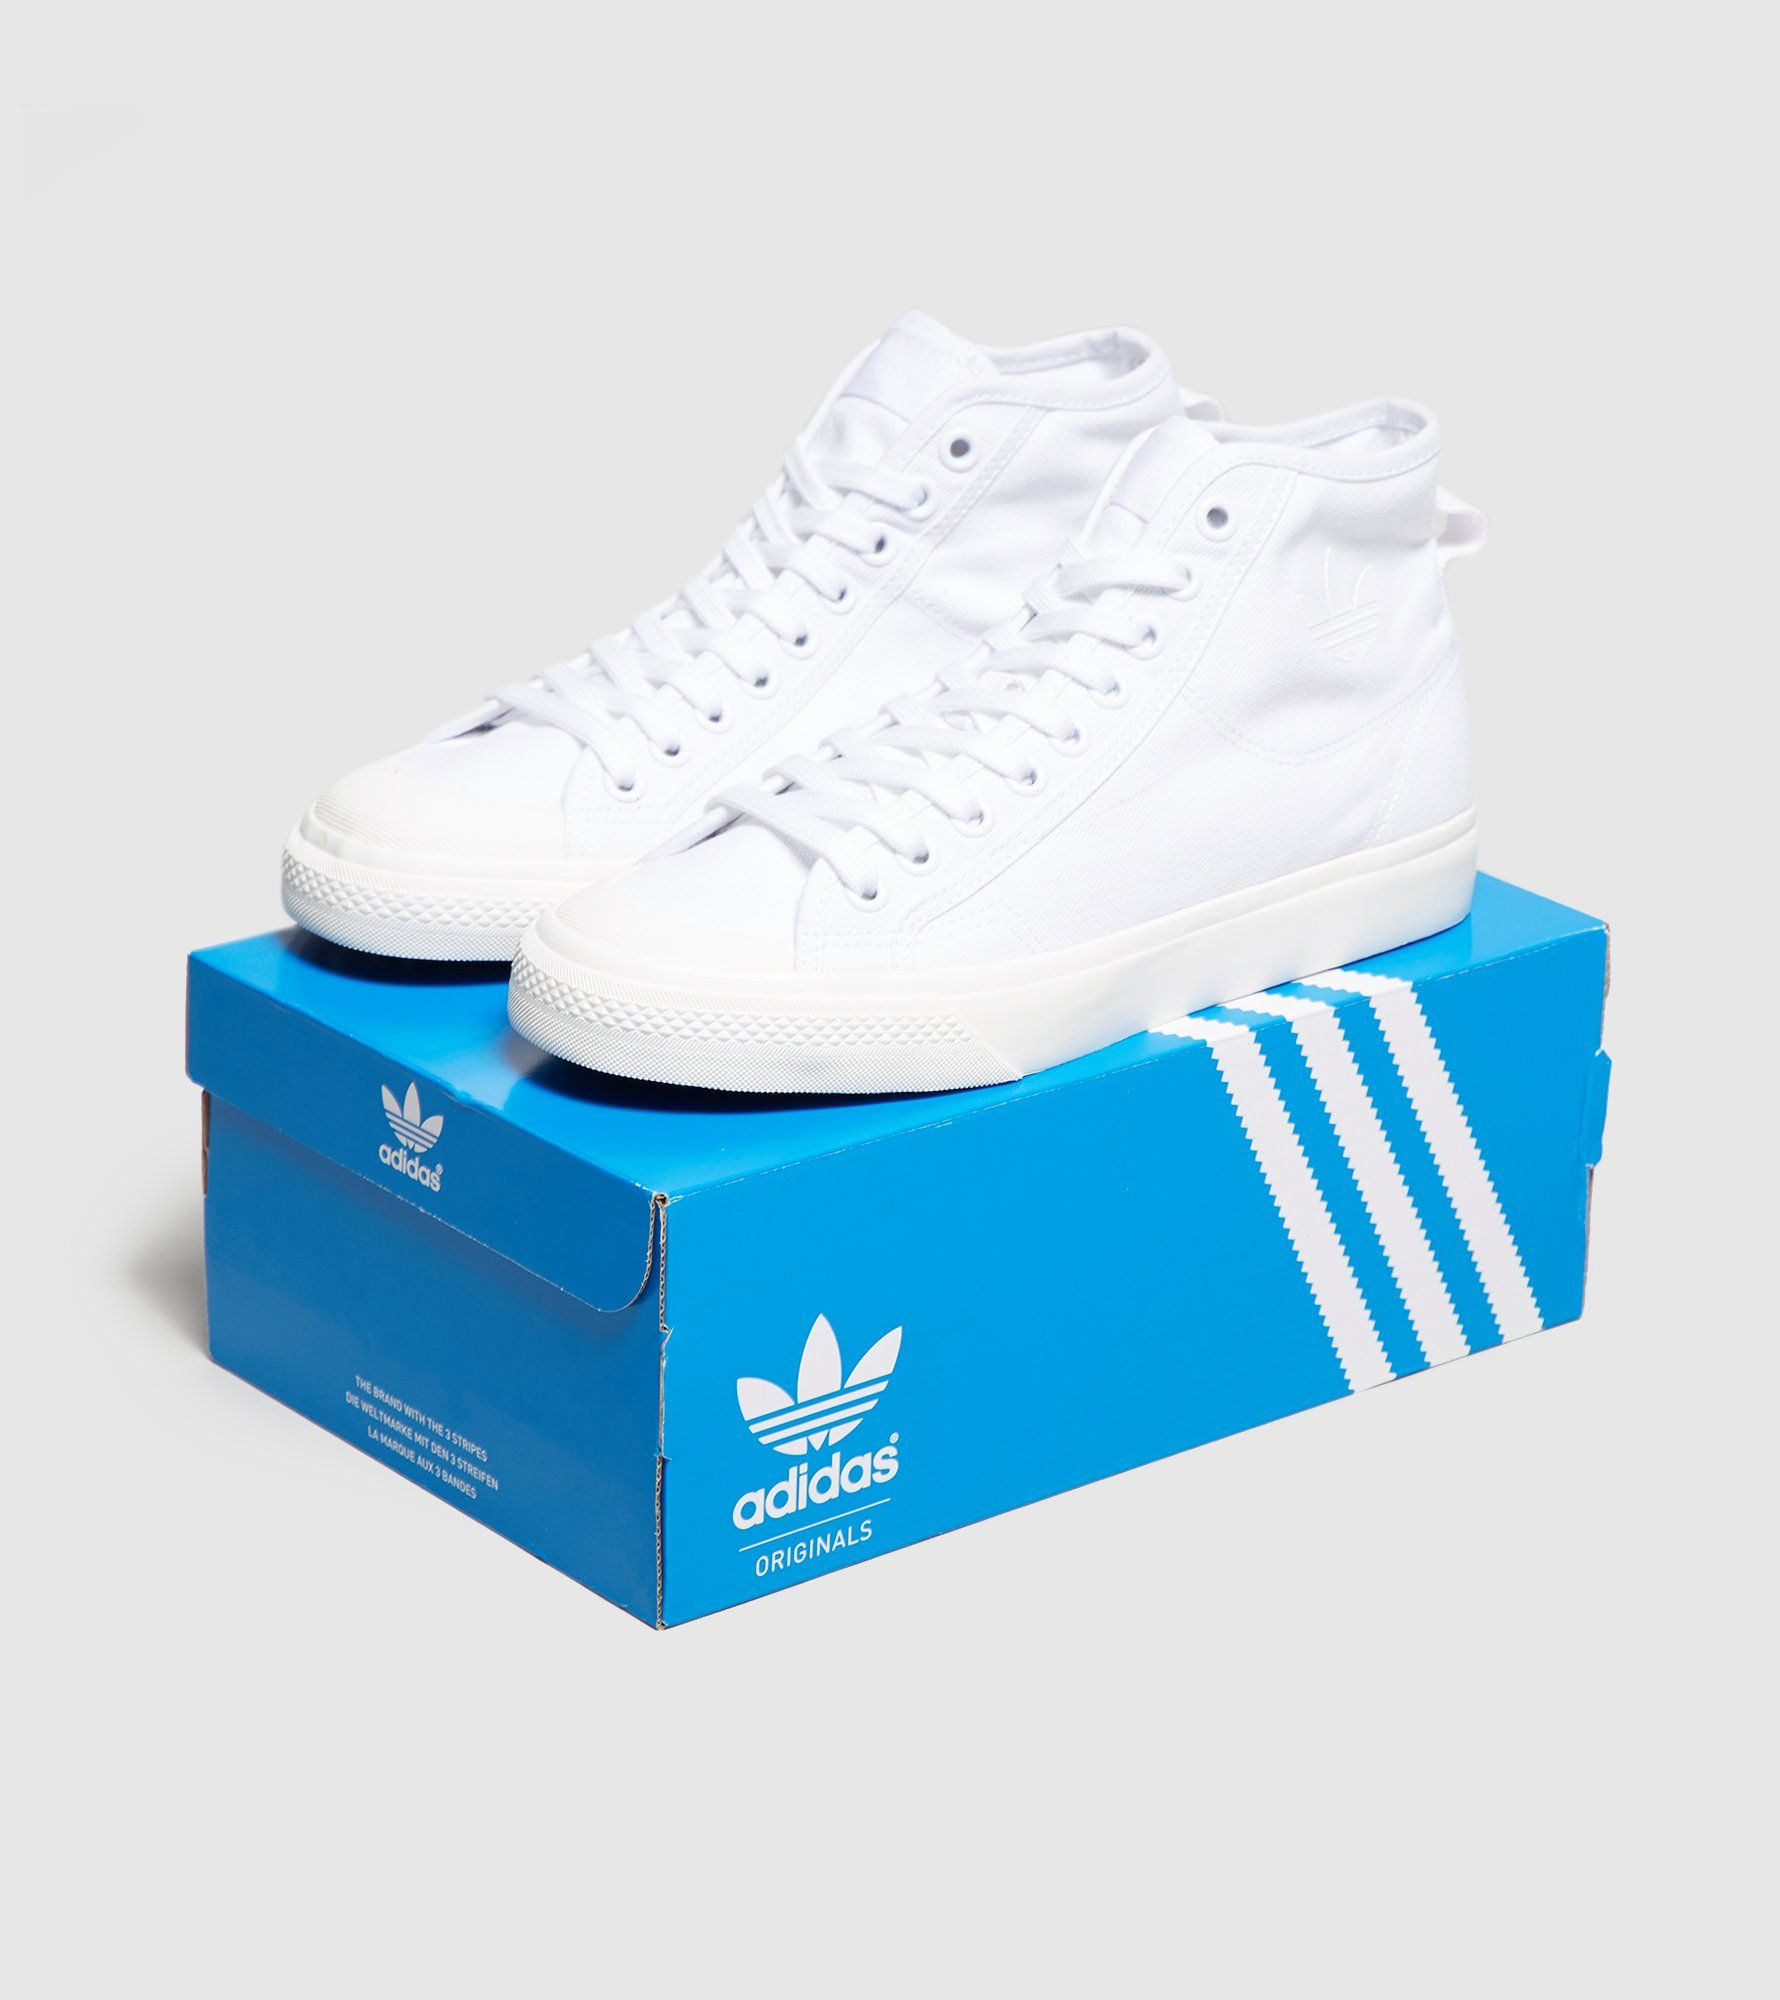 adidas Originals Nizza High Top